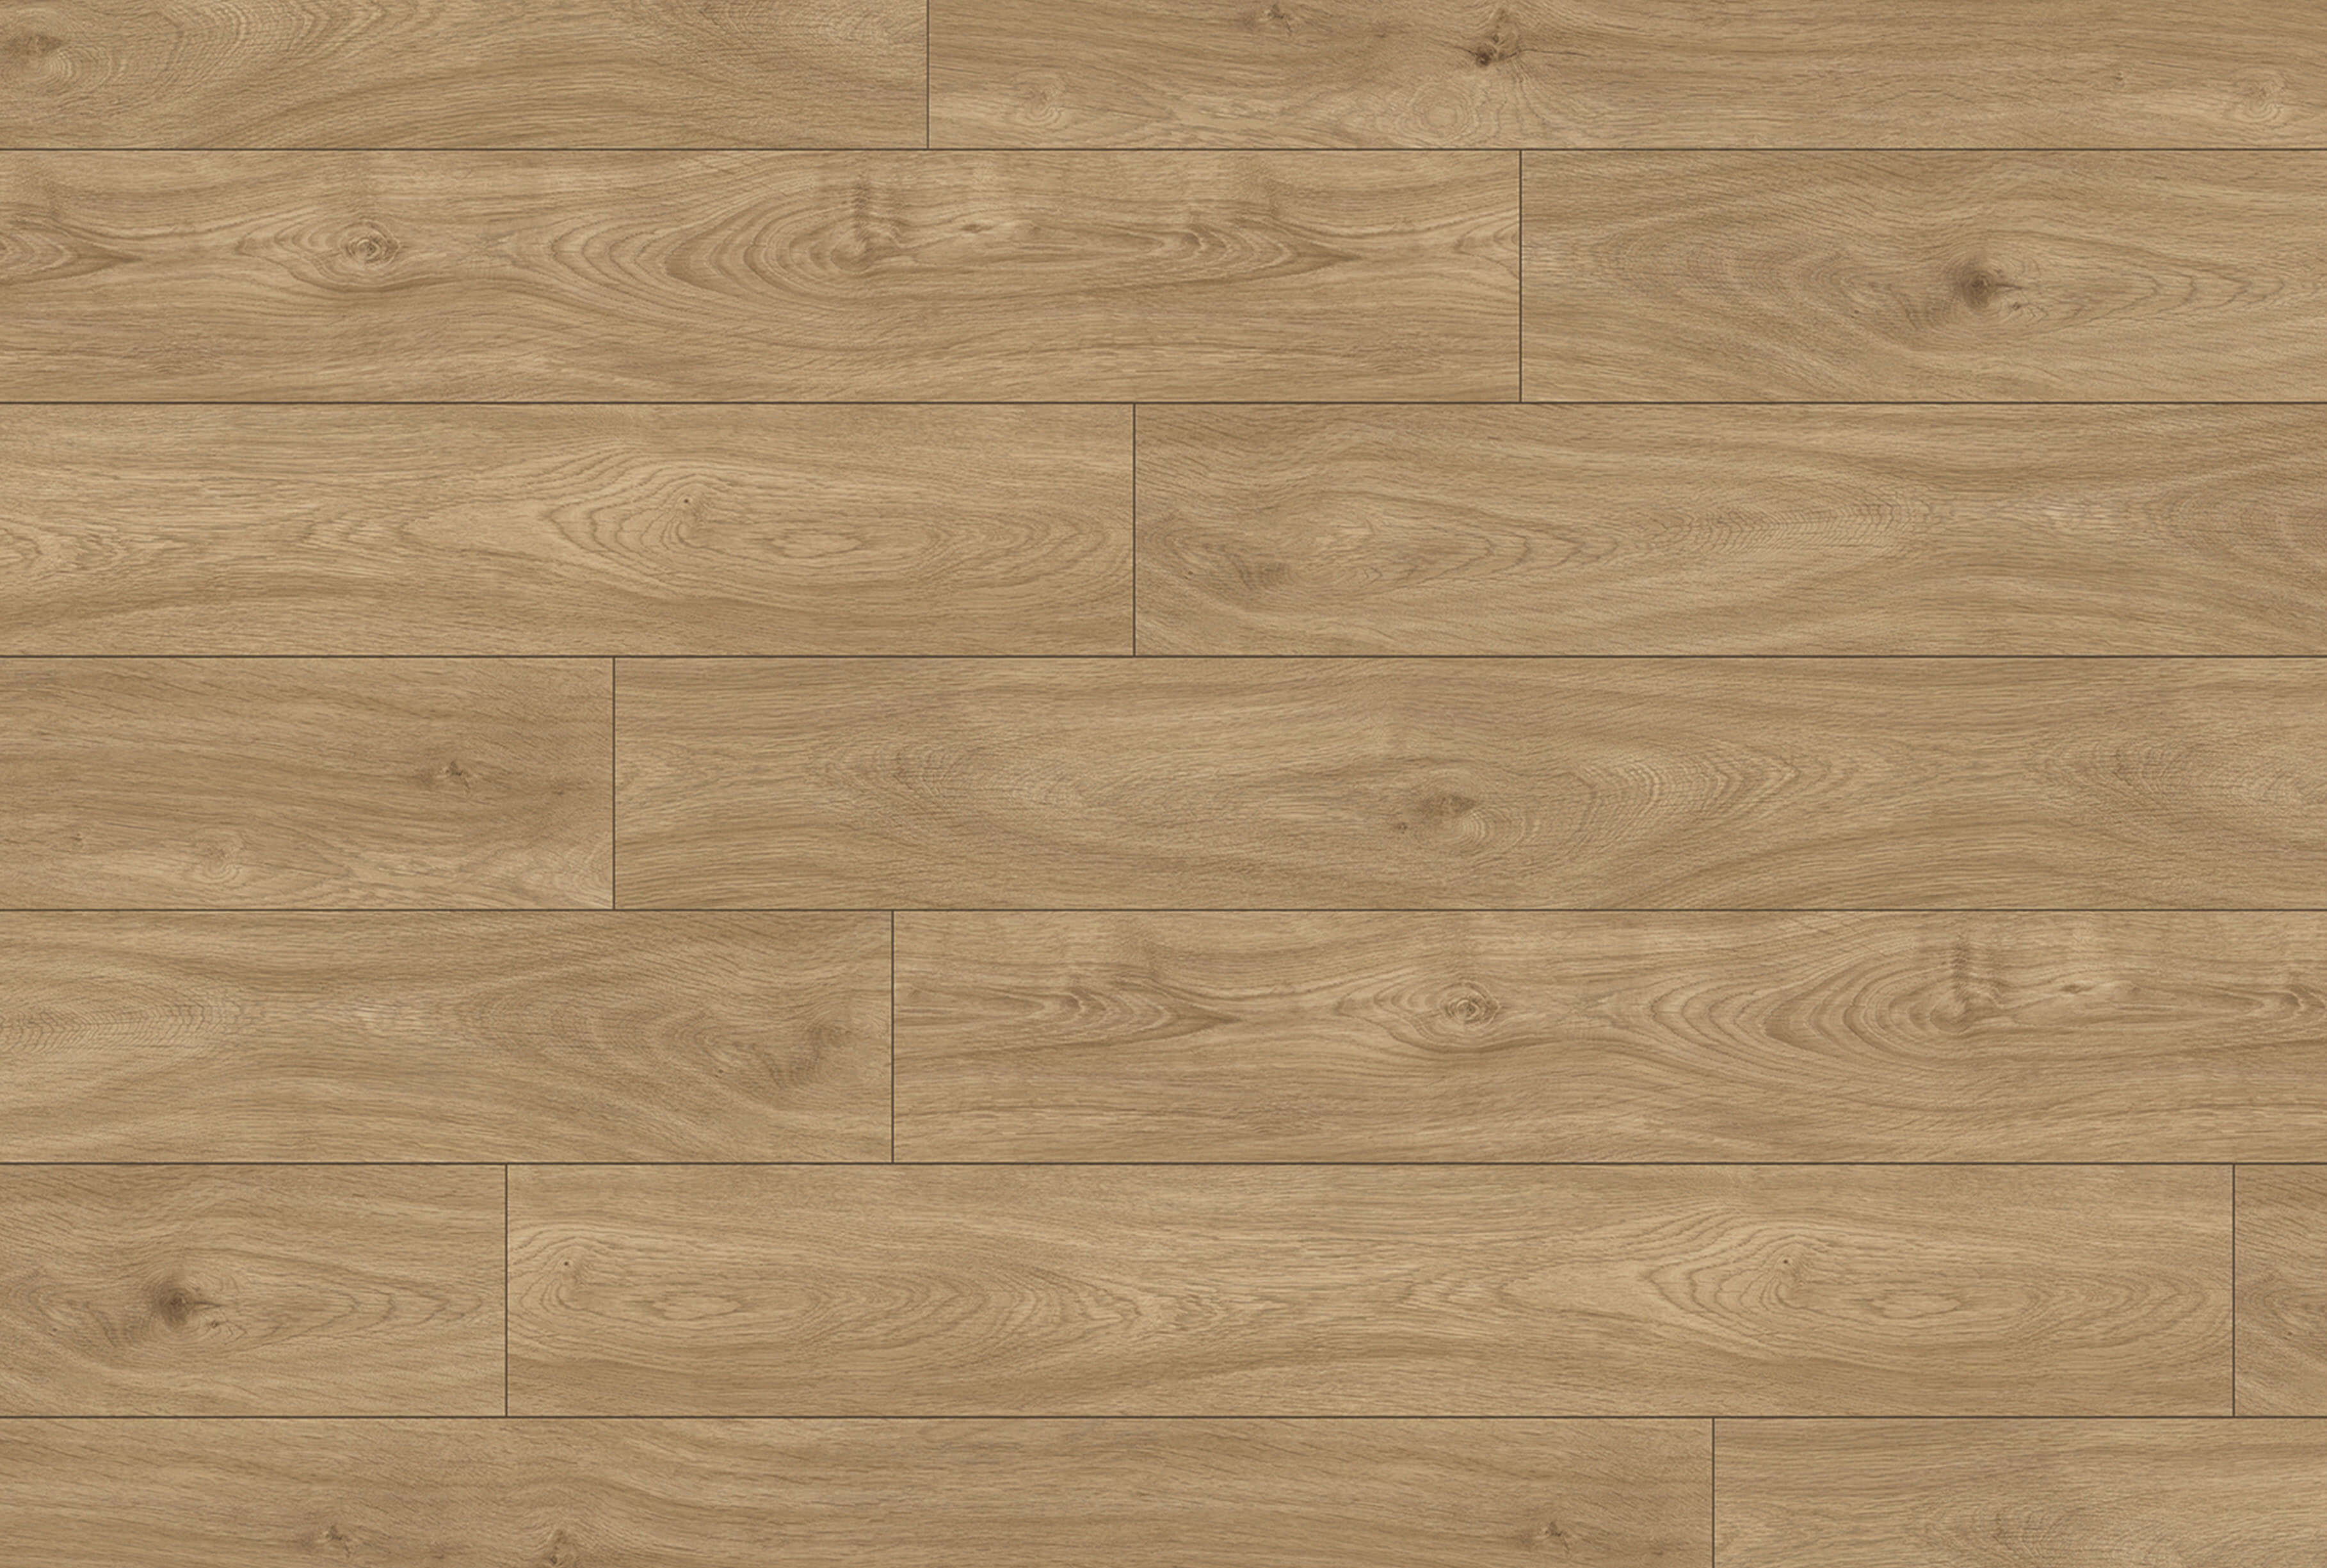 1530 · Bristol Oak<br>Format size: W 192 mm x L 1285 mm<br>Structure: Rustic Finish